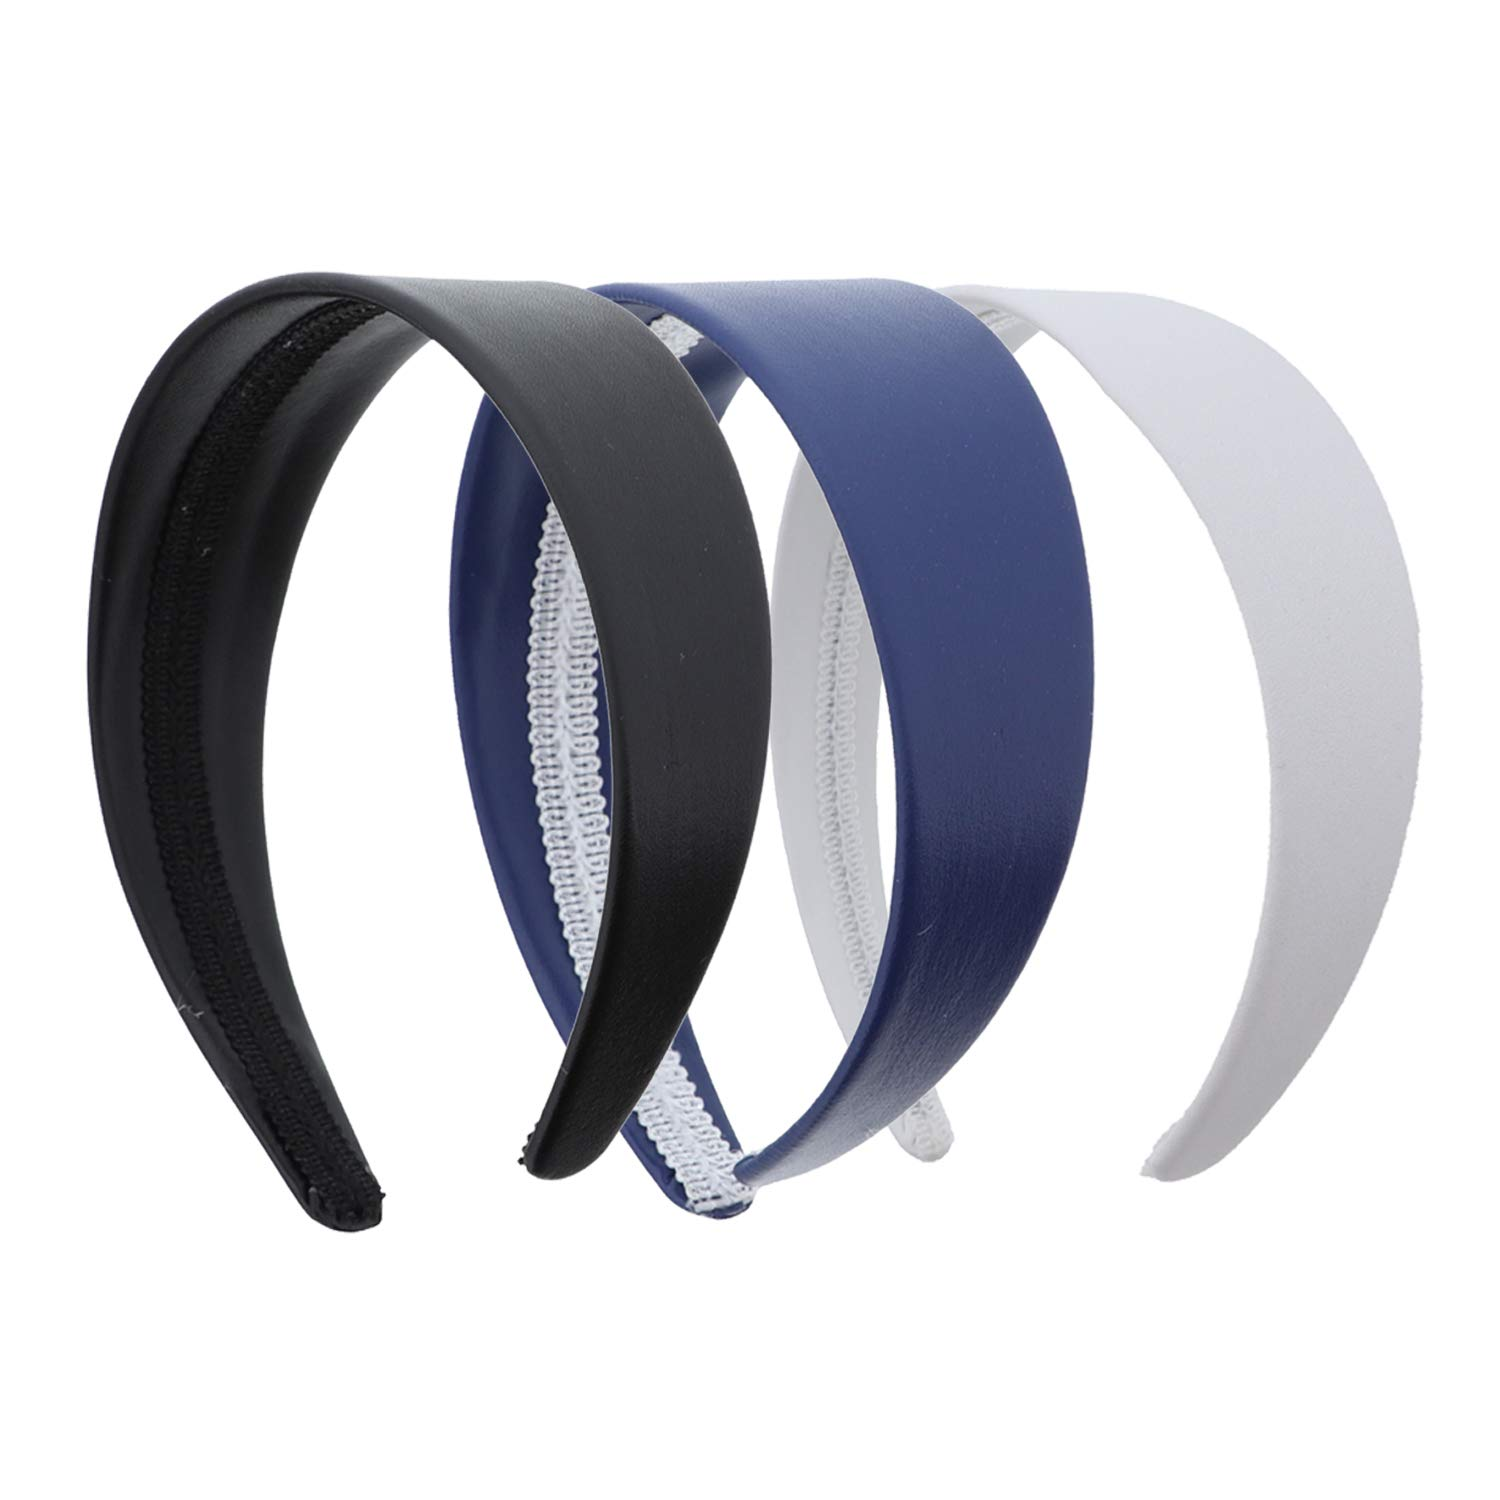 2 Inch Wide Leather Like Headband Solid Hair band 3 Pack (Navy, Black & White)